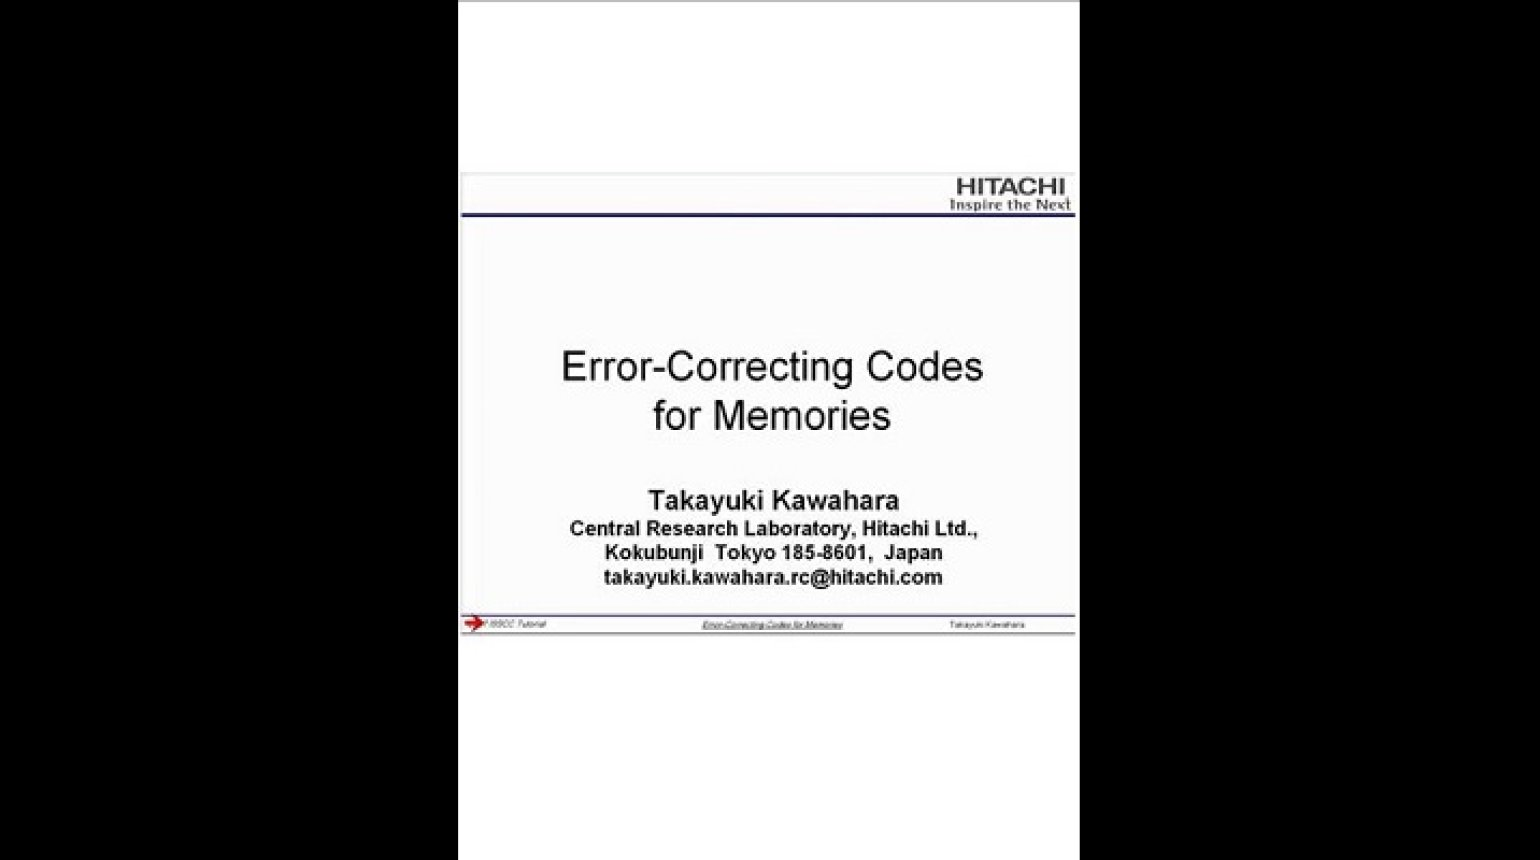 Error-Correcting Codes for Memories Video